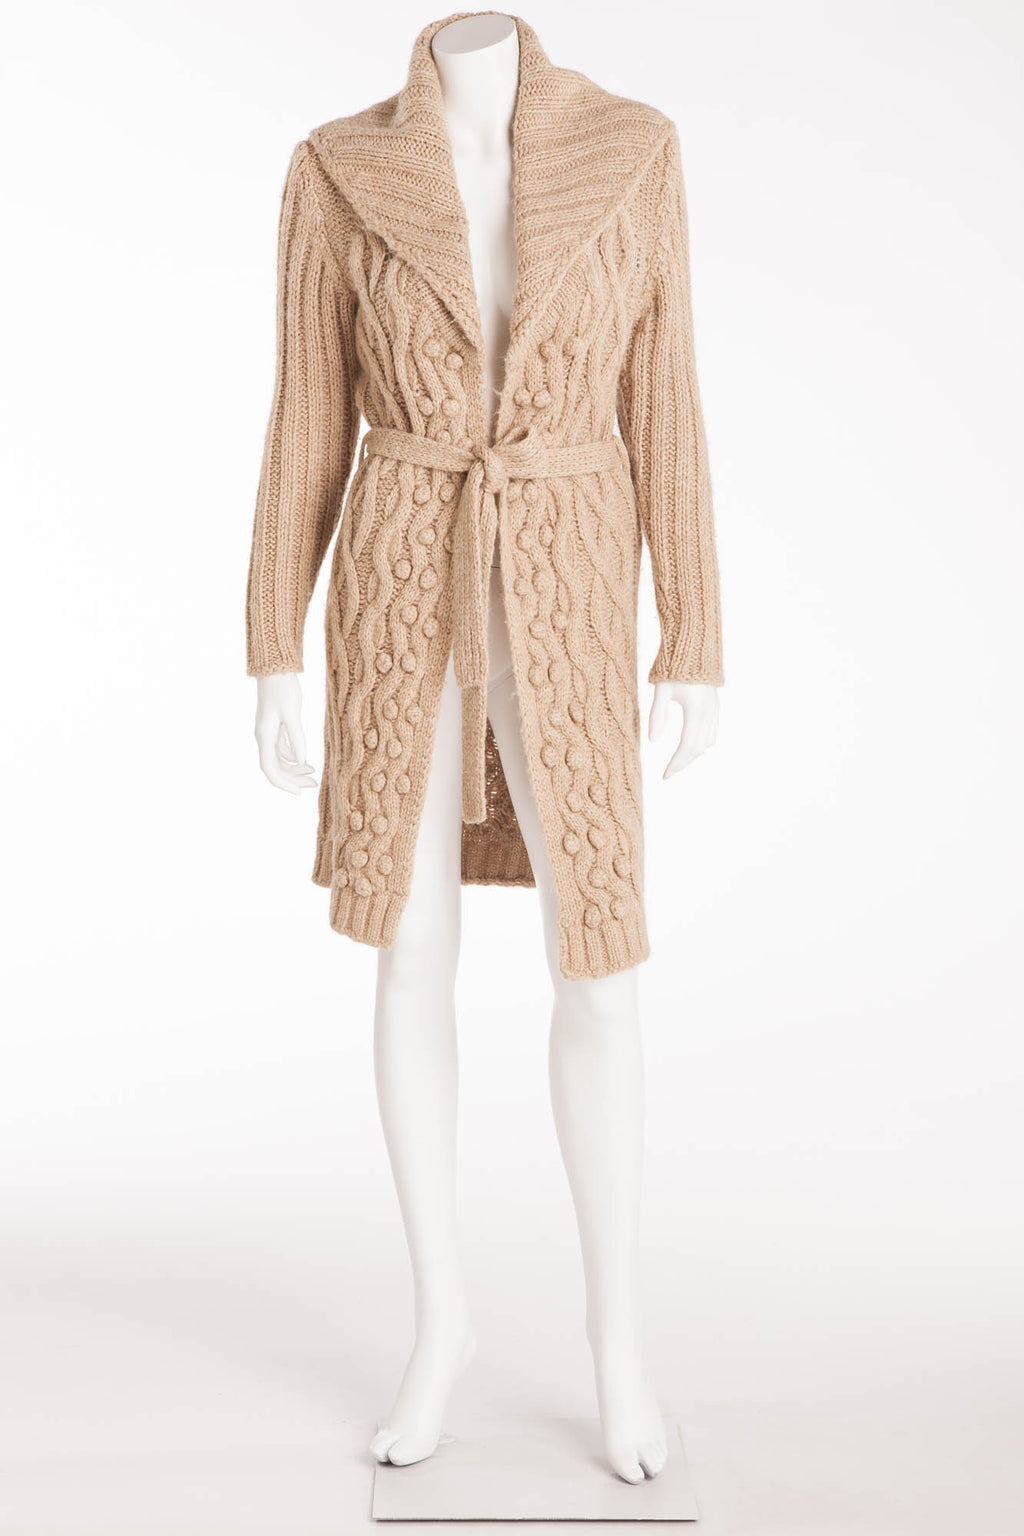 Blumarine - Beige Knit Cashmere Sleeve Sweater - IT 40